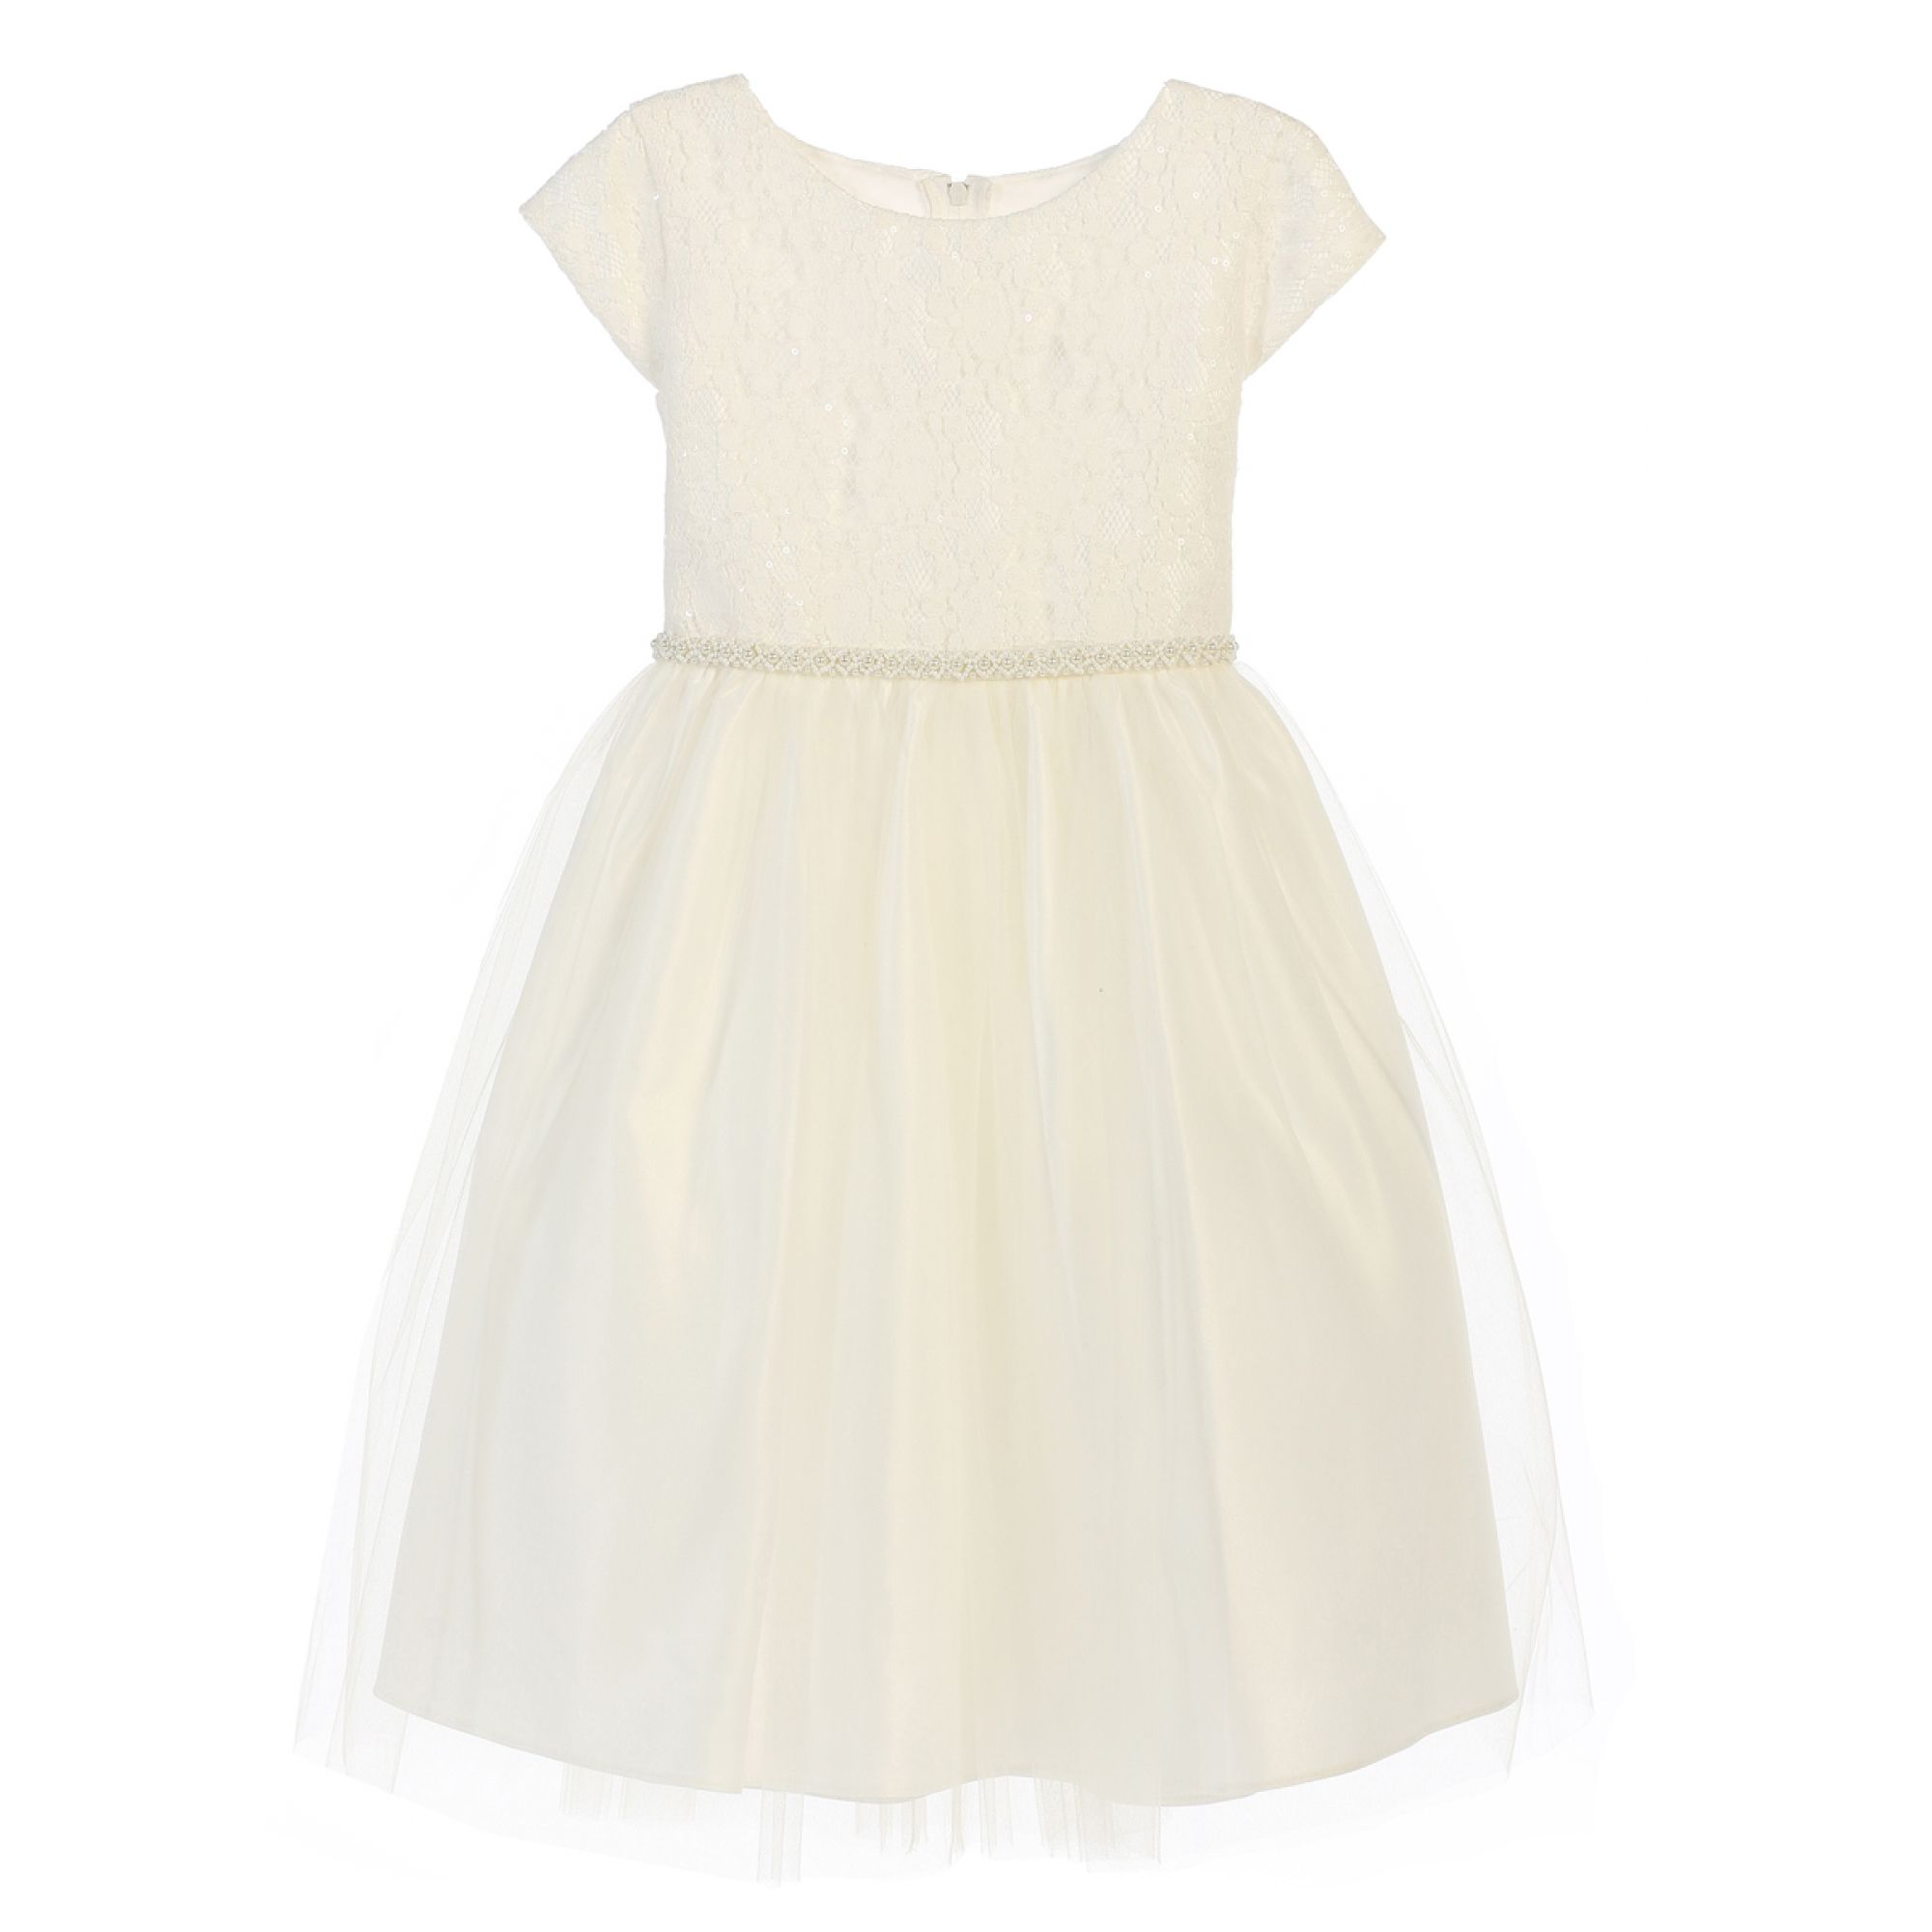 Sweet Kids Little Girls Off White Lace Sequin Tulle Flower Girl